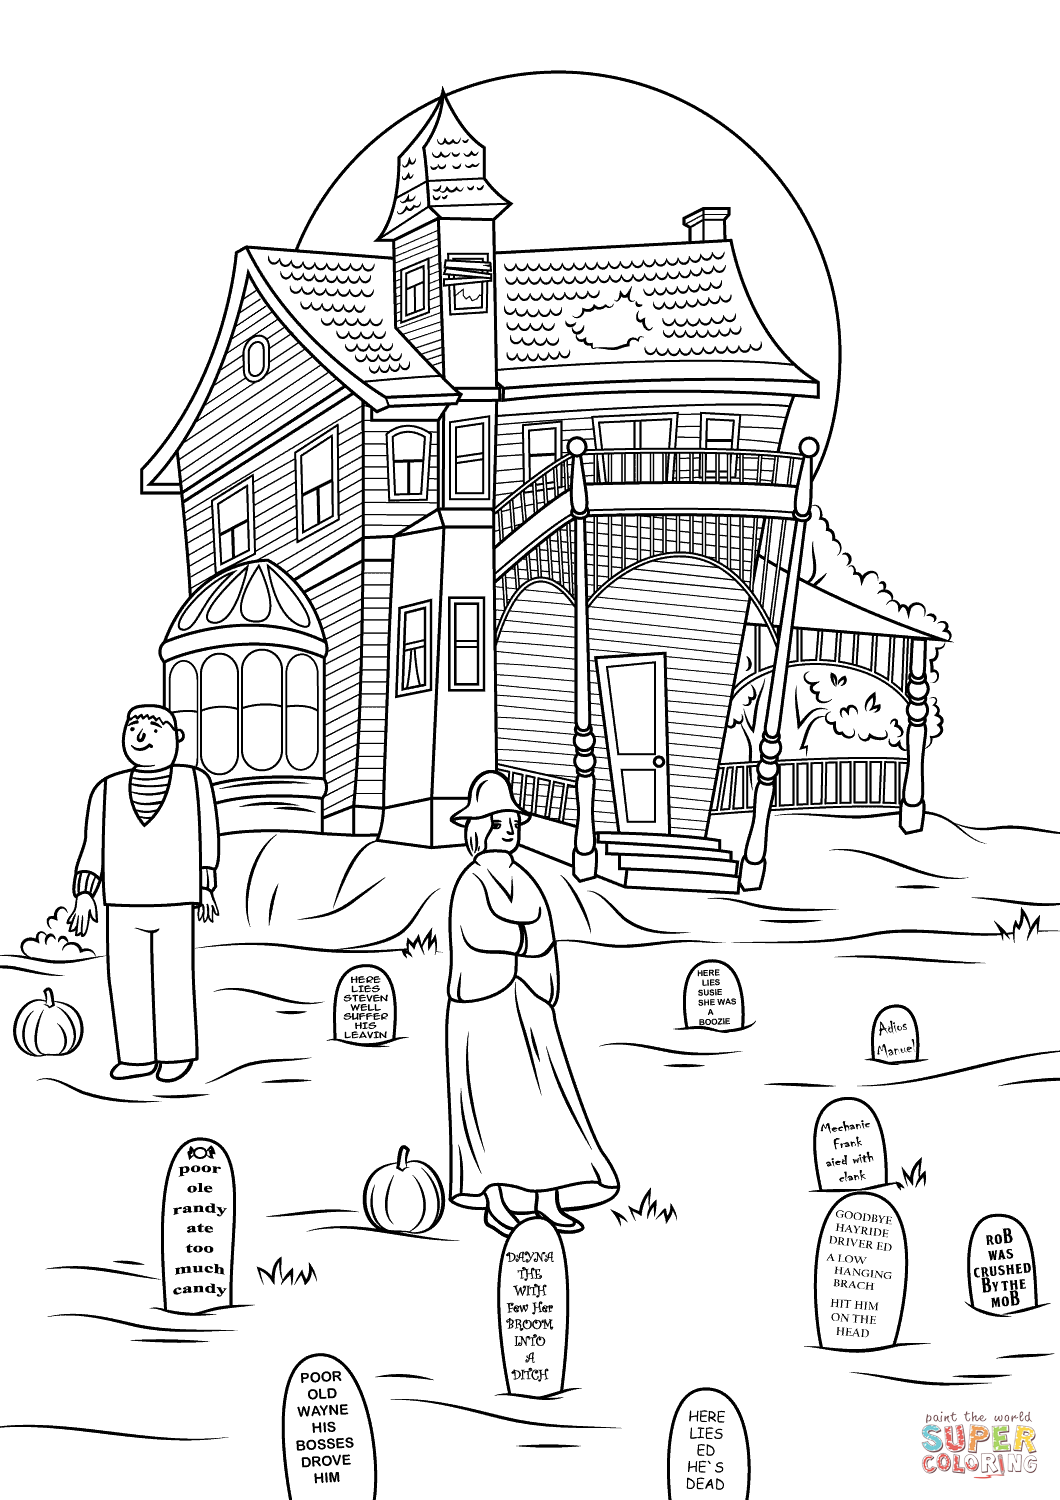 Spooky Haunted House Photo By Jon Seidman Coloring Page Free